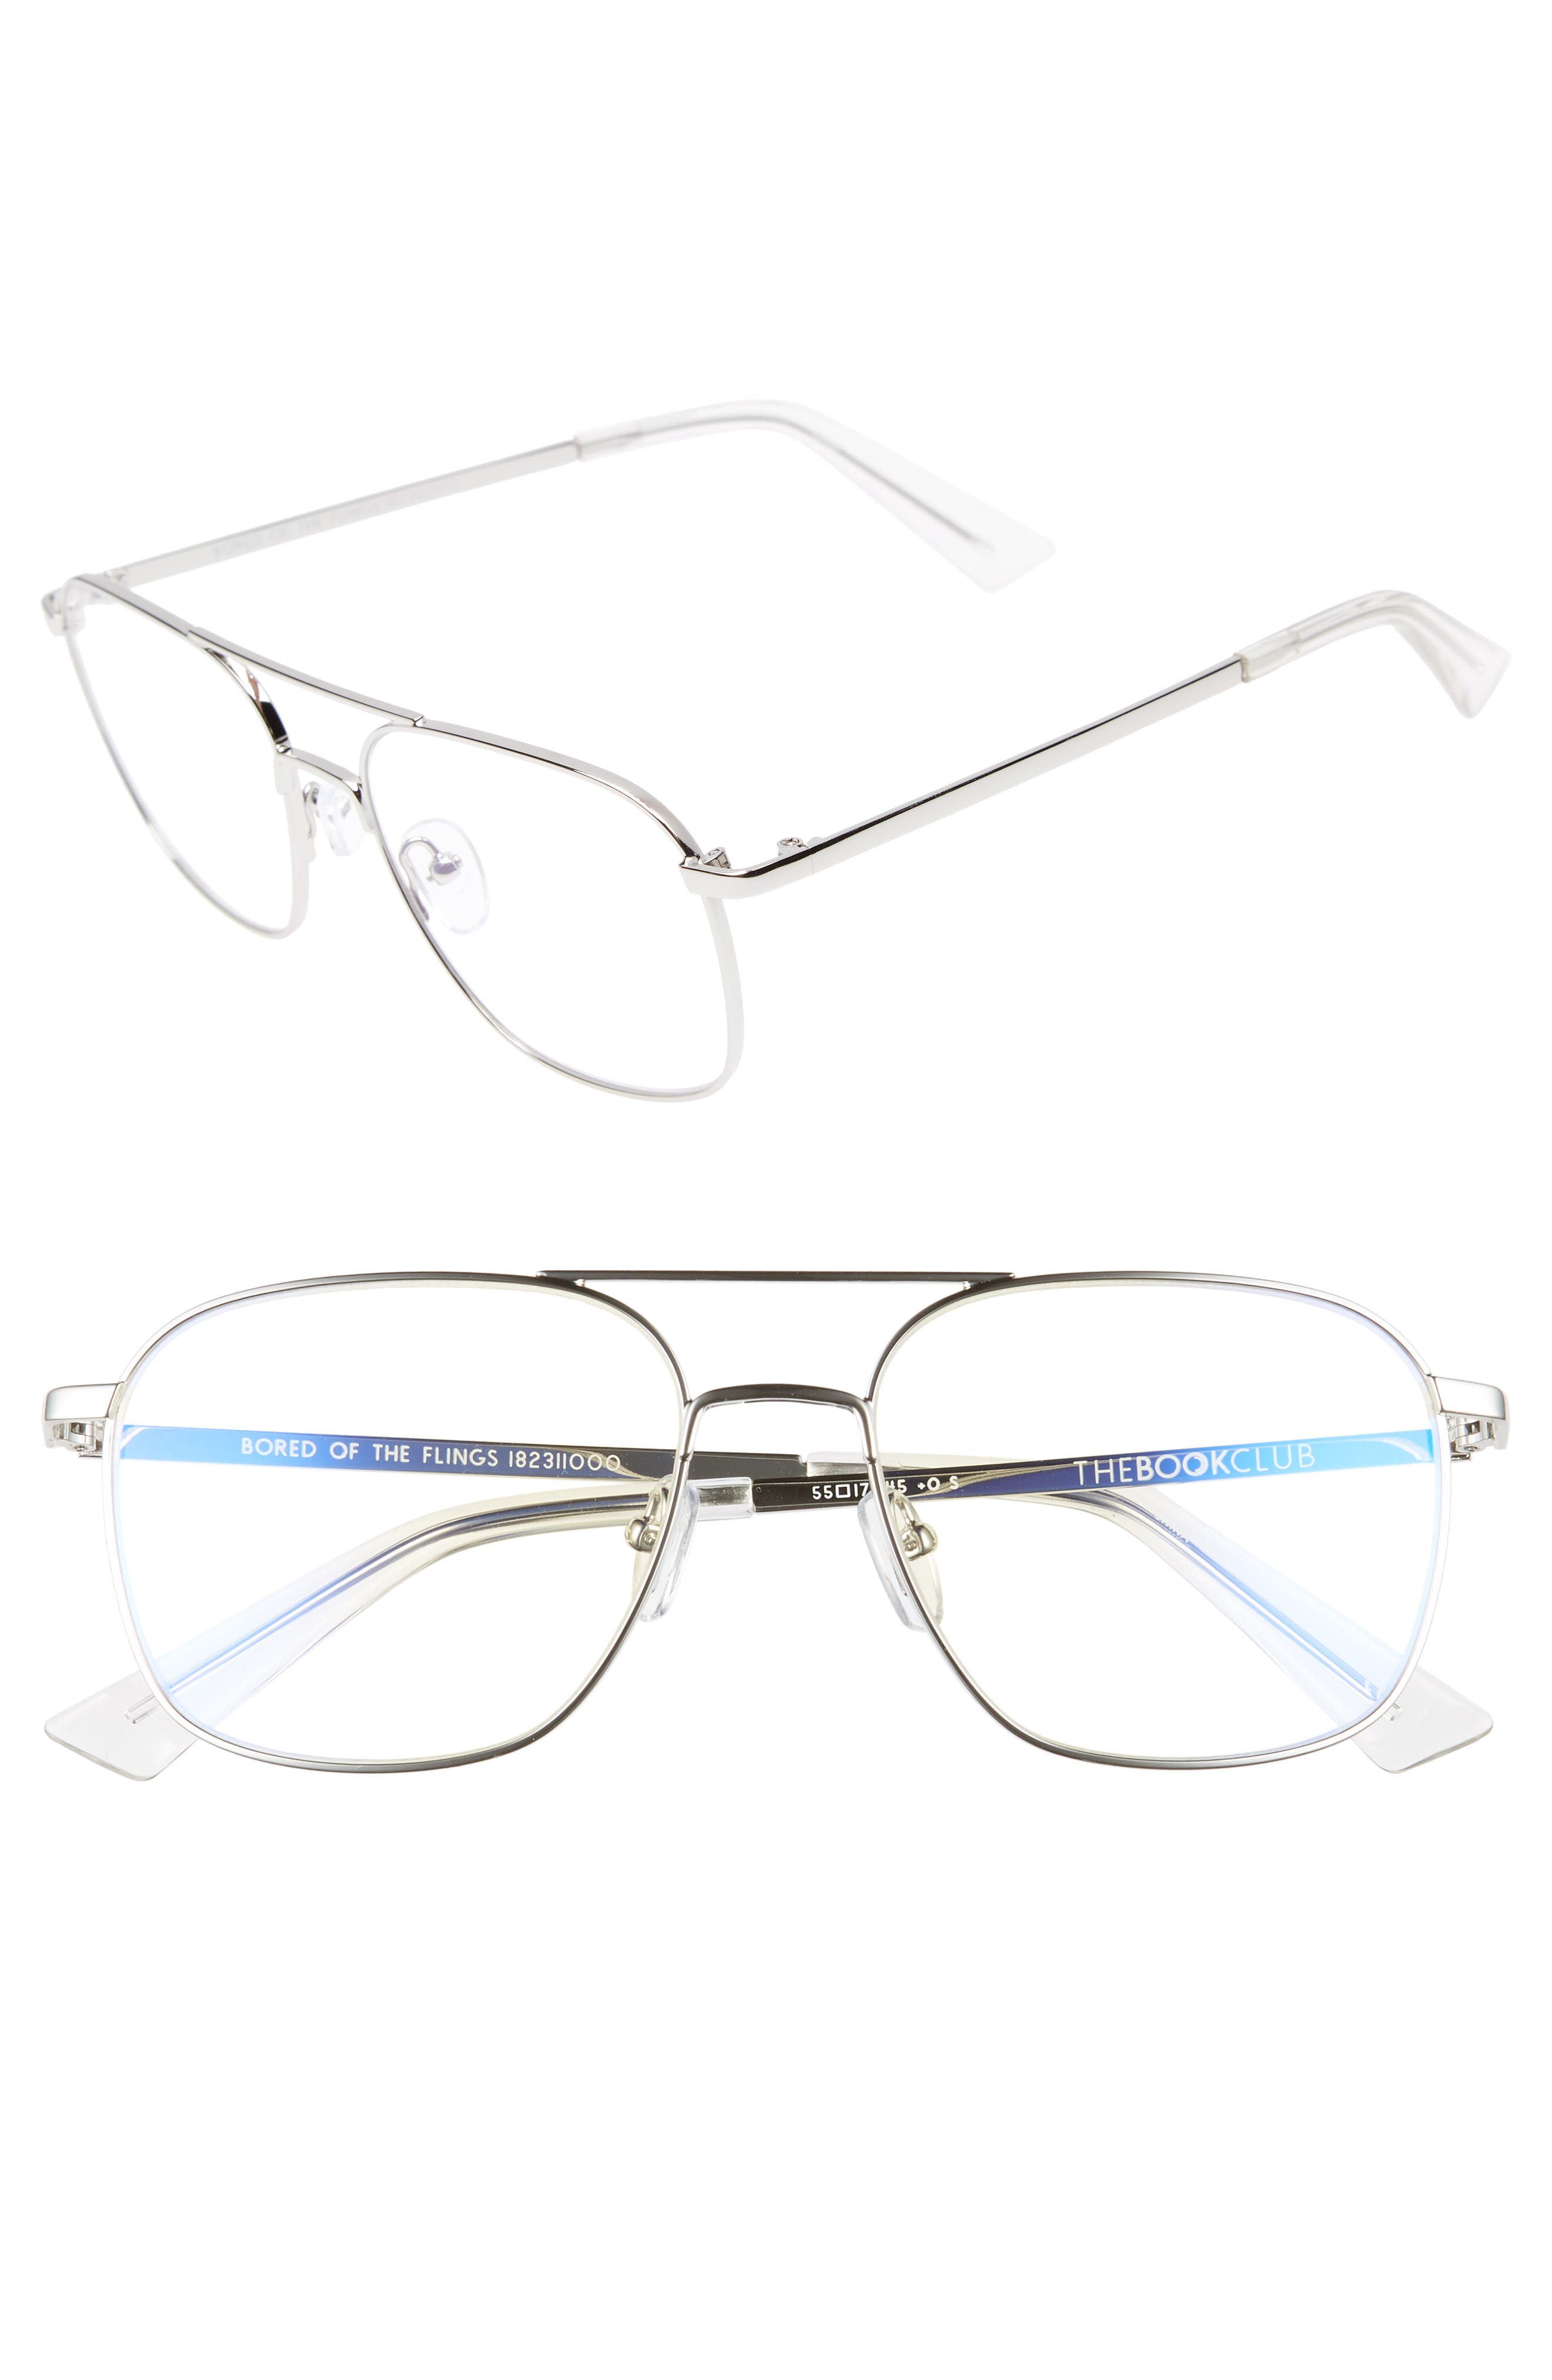 Bored of the Flings 55mm Reading Glasses,                         Main,                         color, Silver/ Cellophane